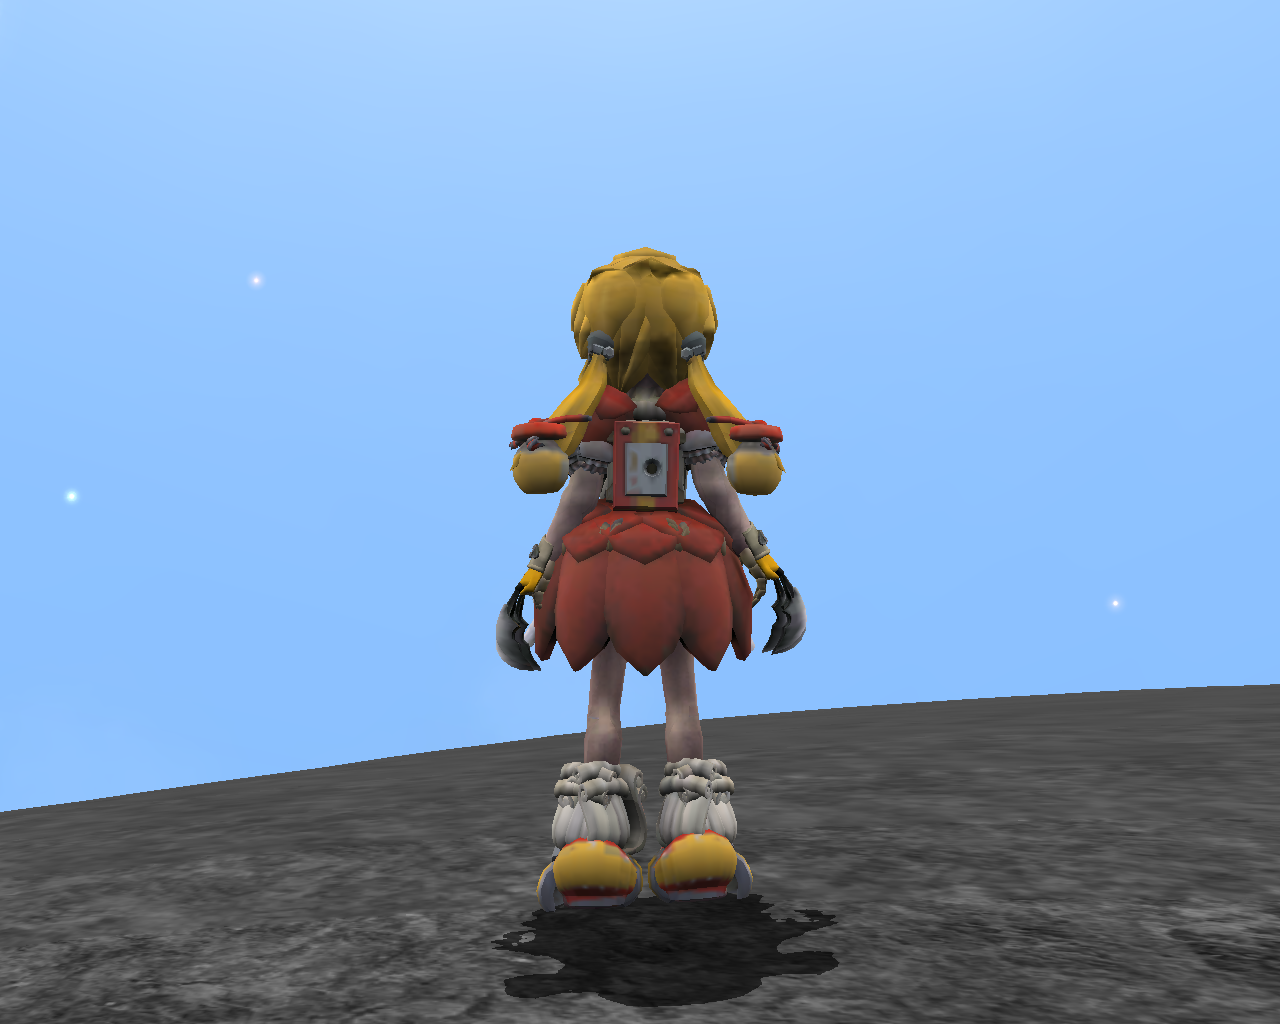 Androide Alice Spore_2019-09-07_10-57-28_zpsmwzz8x5t